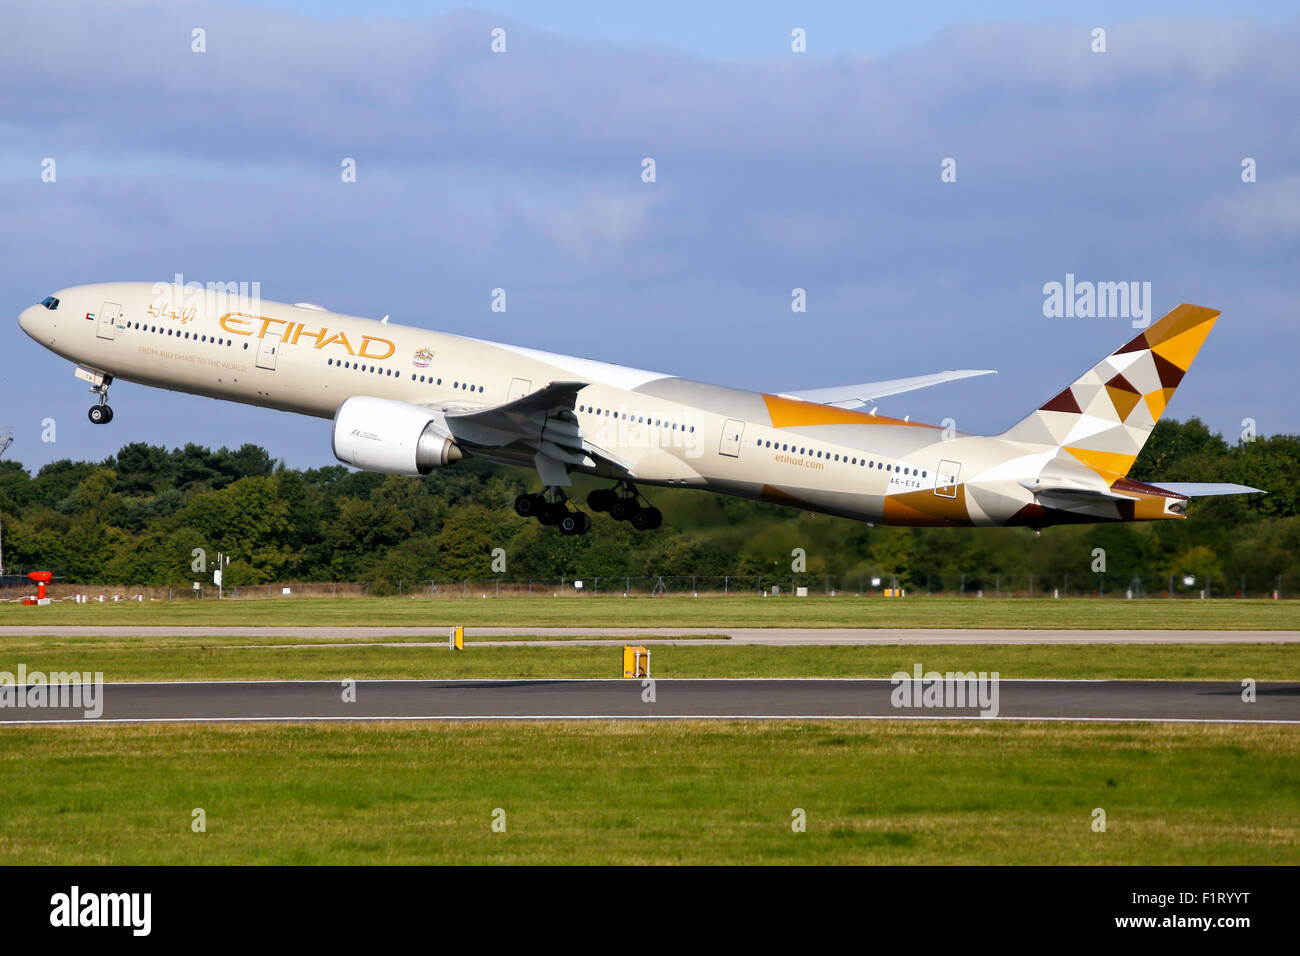 Etihad Airways Boeing 777-300 climbs away from runway 23R at Manchester airport. - Stock Image